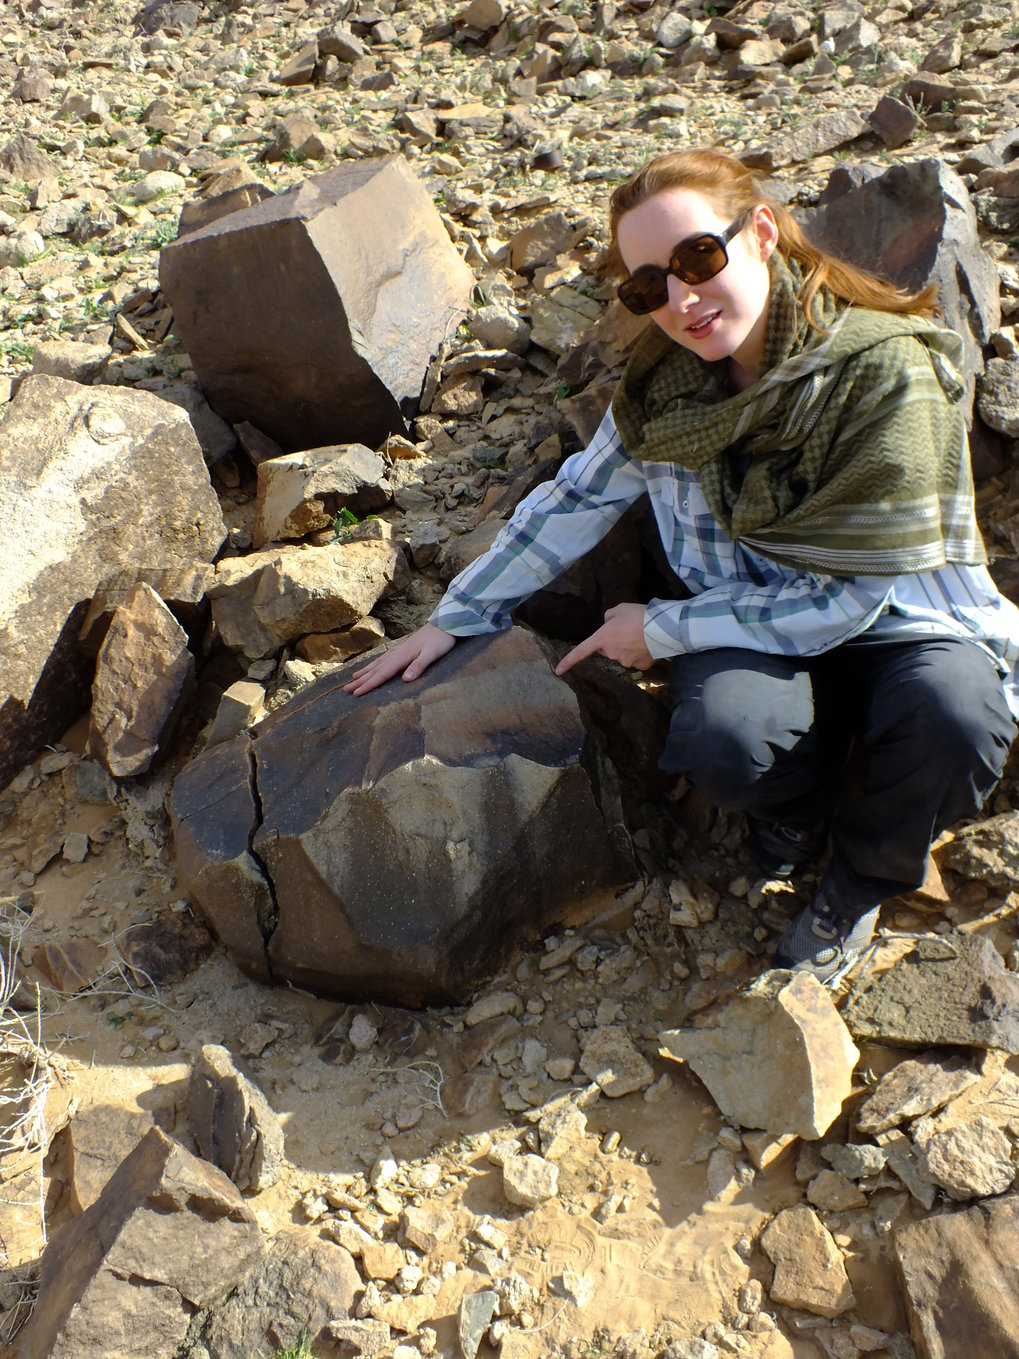 Researcher Eleanor Scerri with giant Acheulean core from which flakes were struck to create the handaxes.